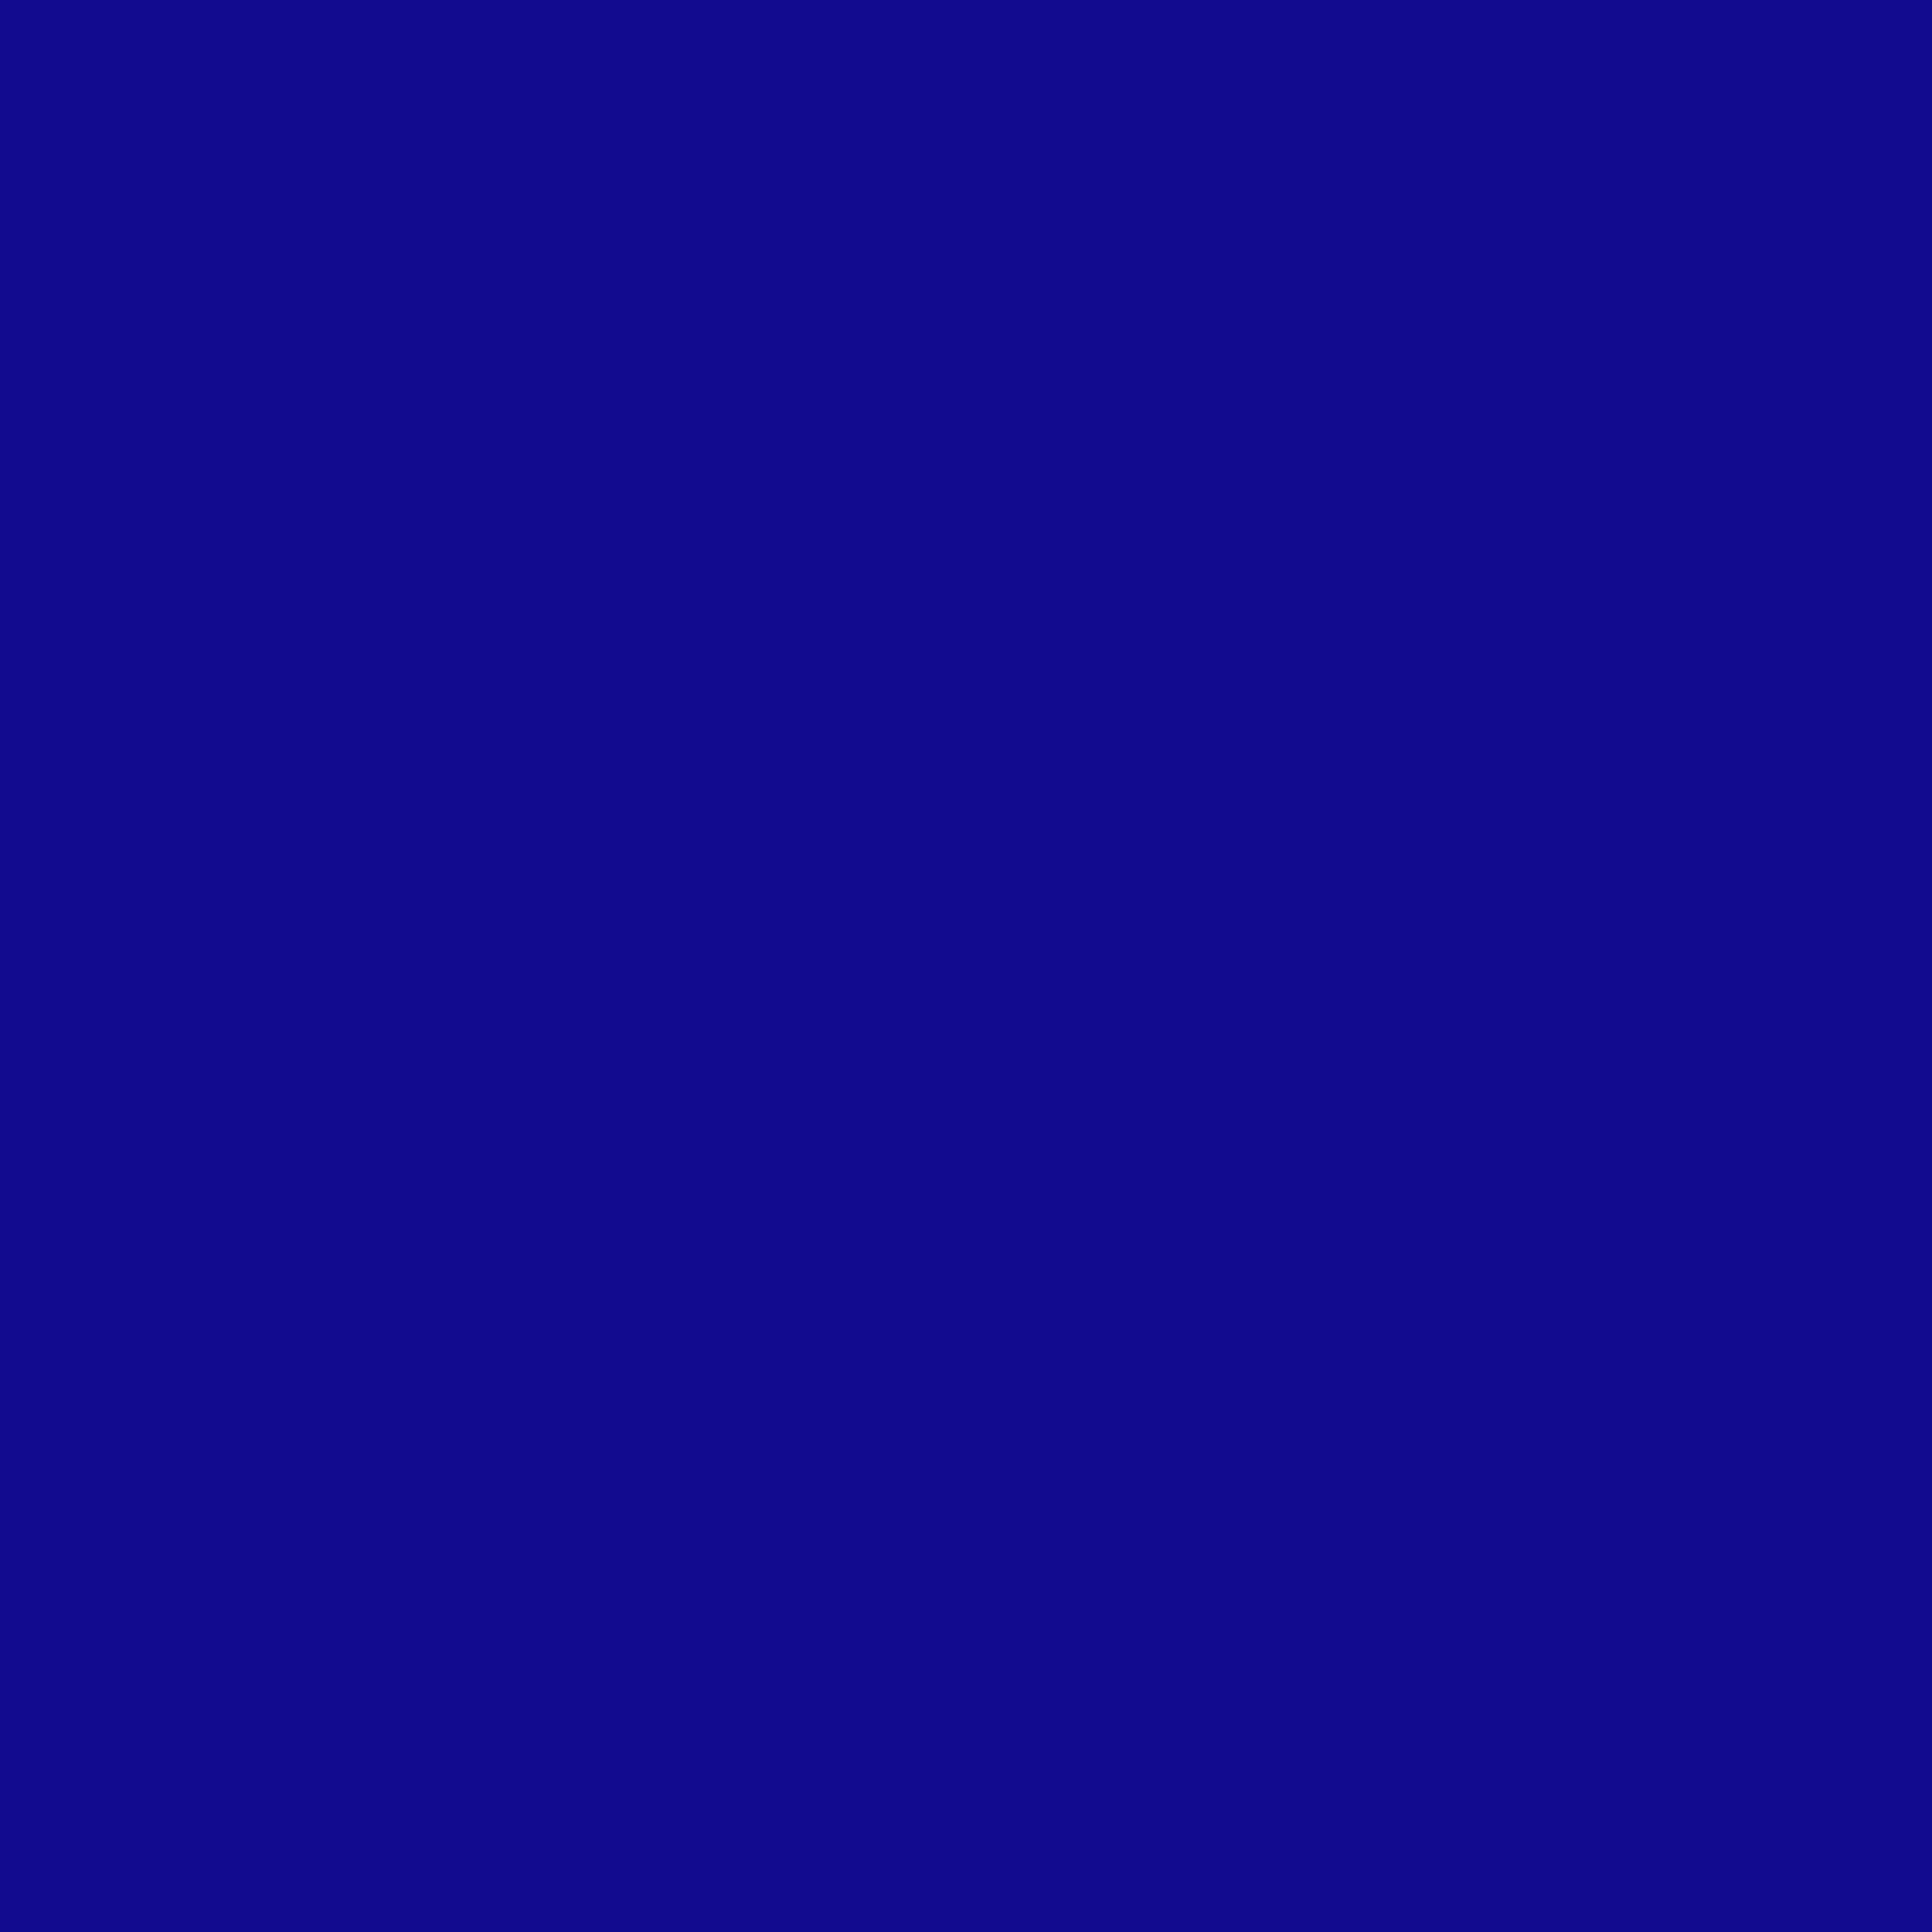 2732x2732 Ultramarine Solid Color Background 2732x2732